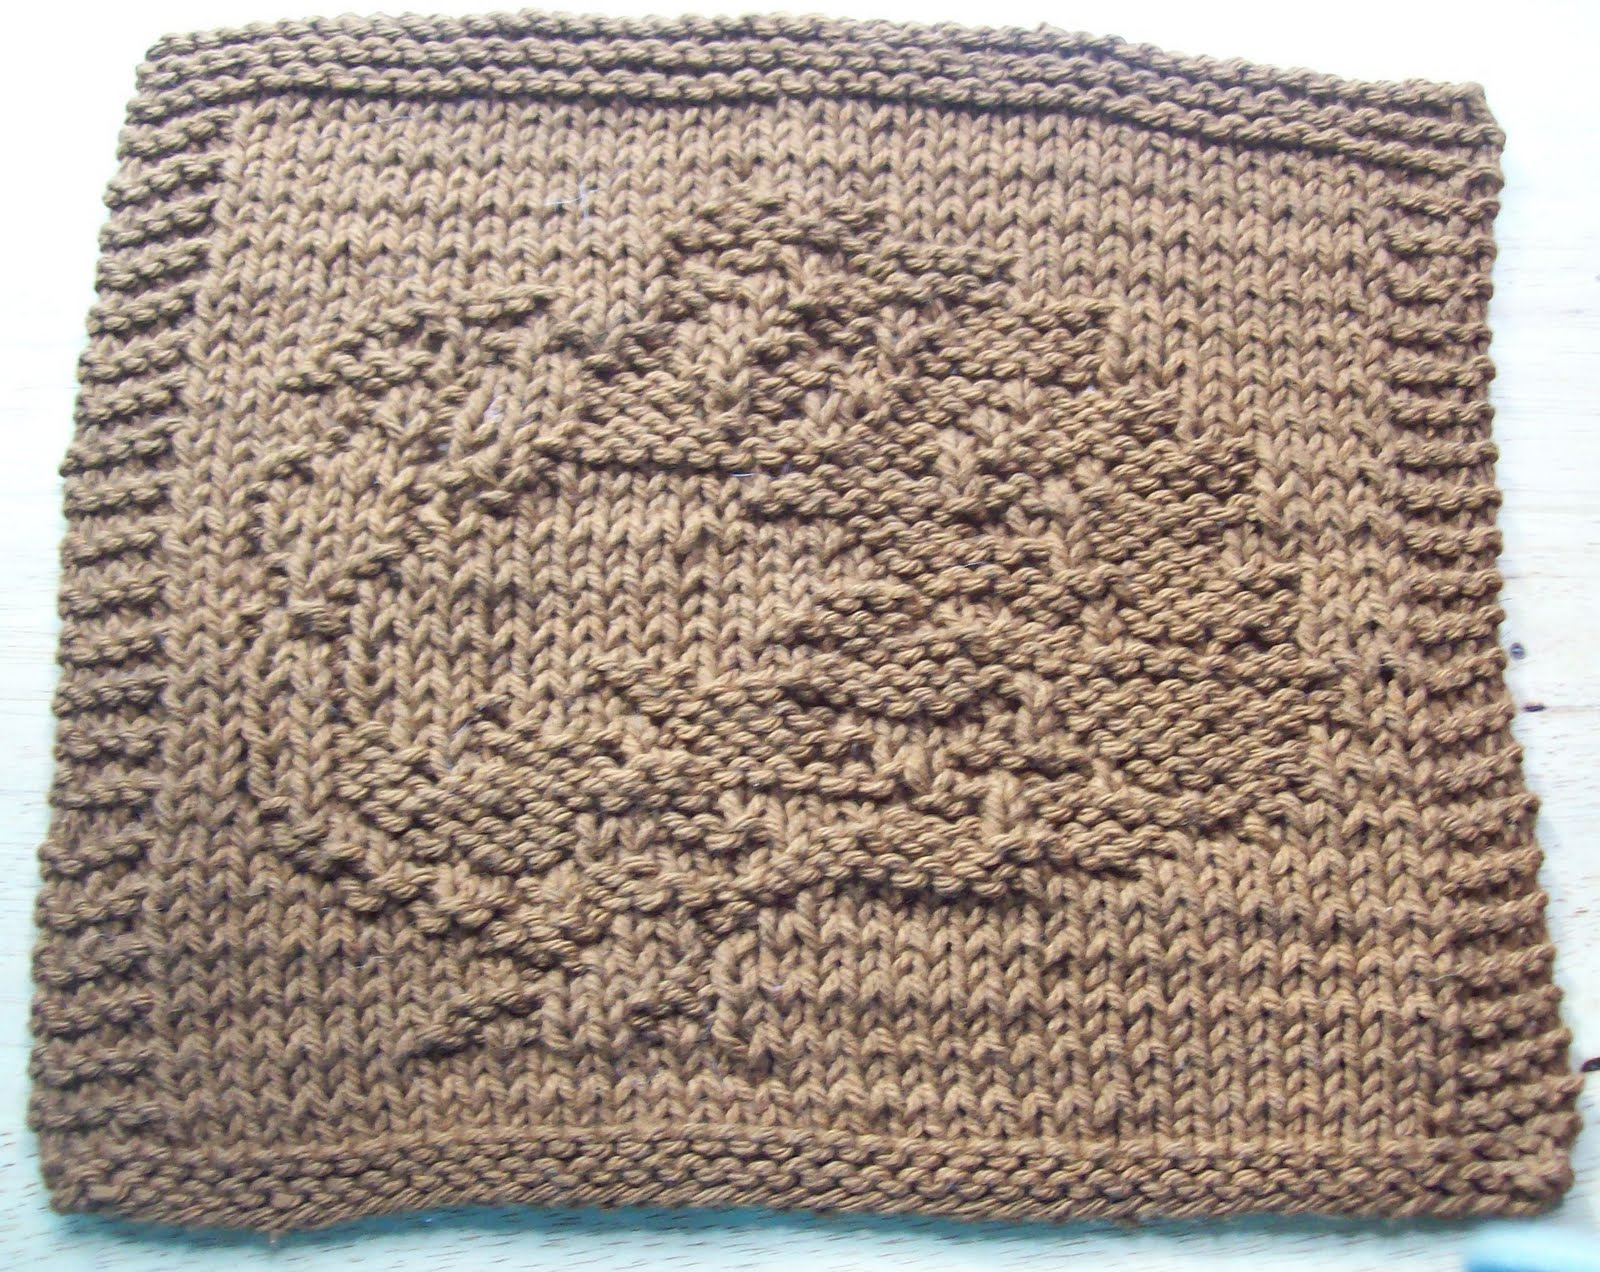 Knitting Dishcloth Patterns : DigKnitty Designs: Turkey Too Knit Dishcloth Pattern